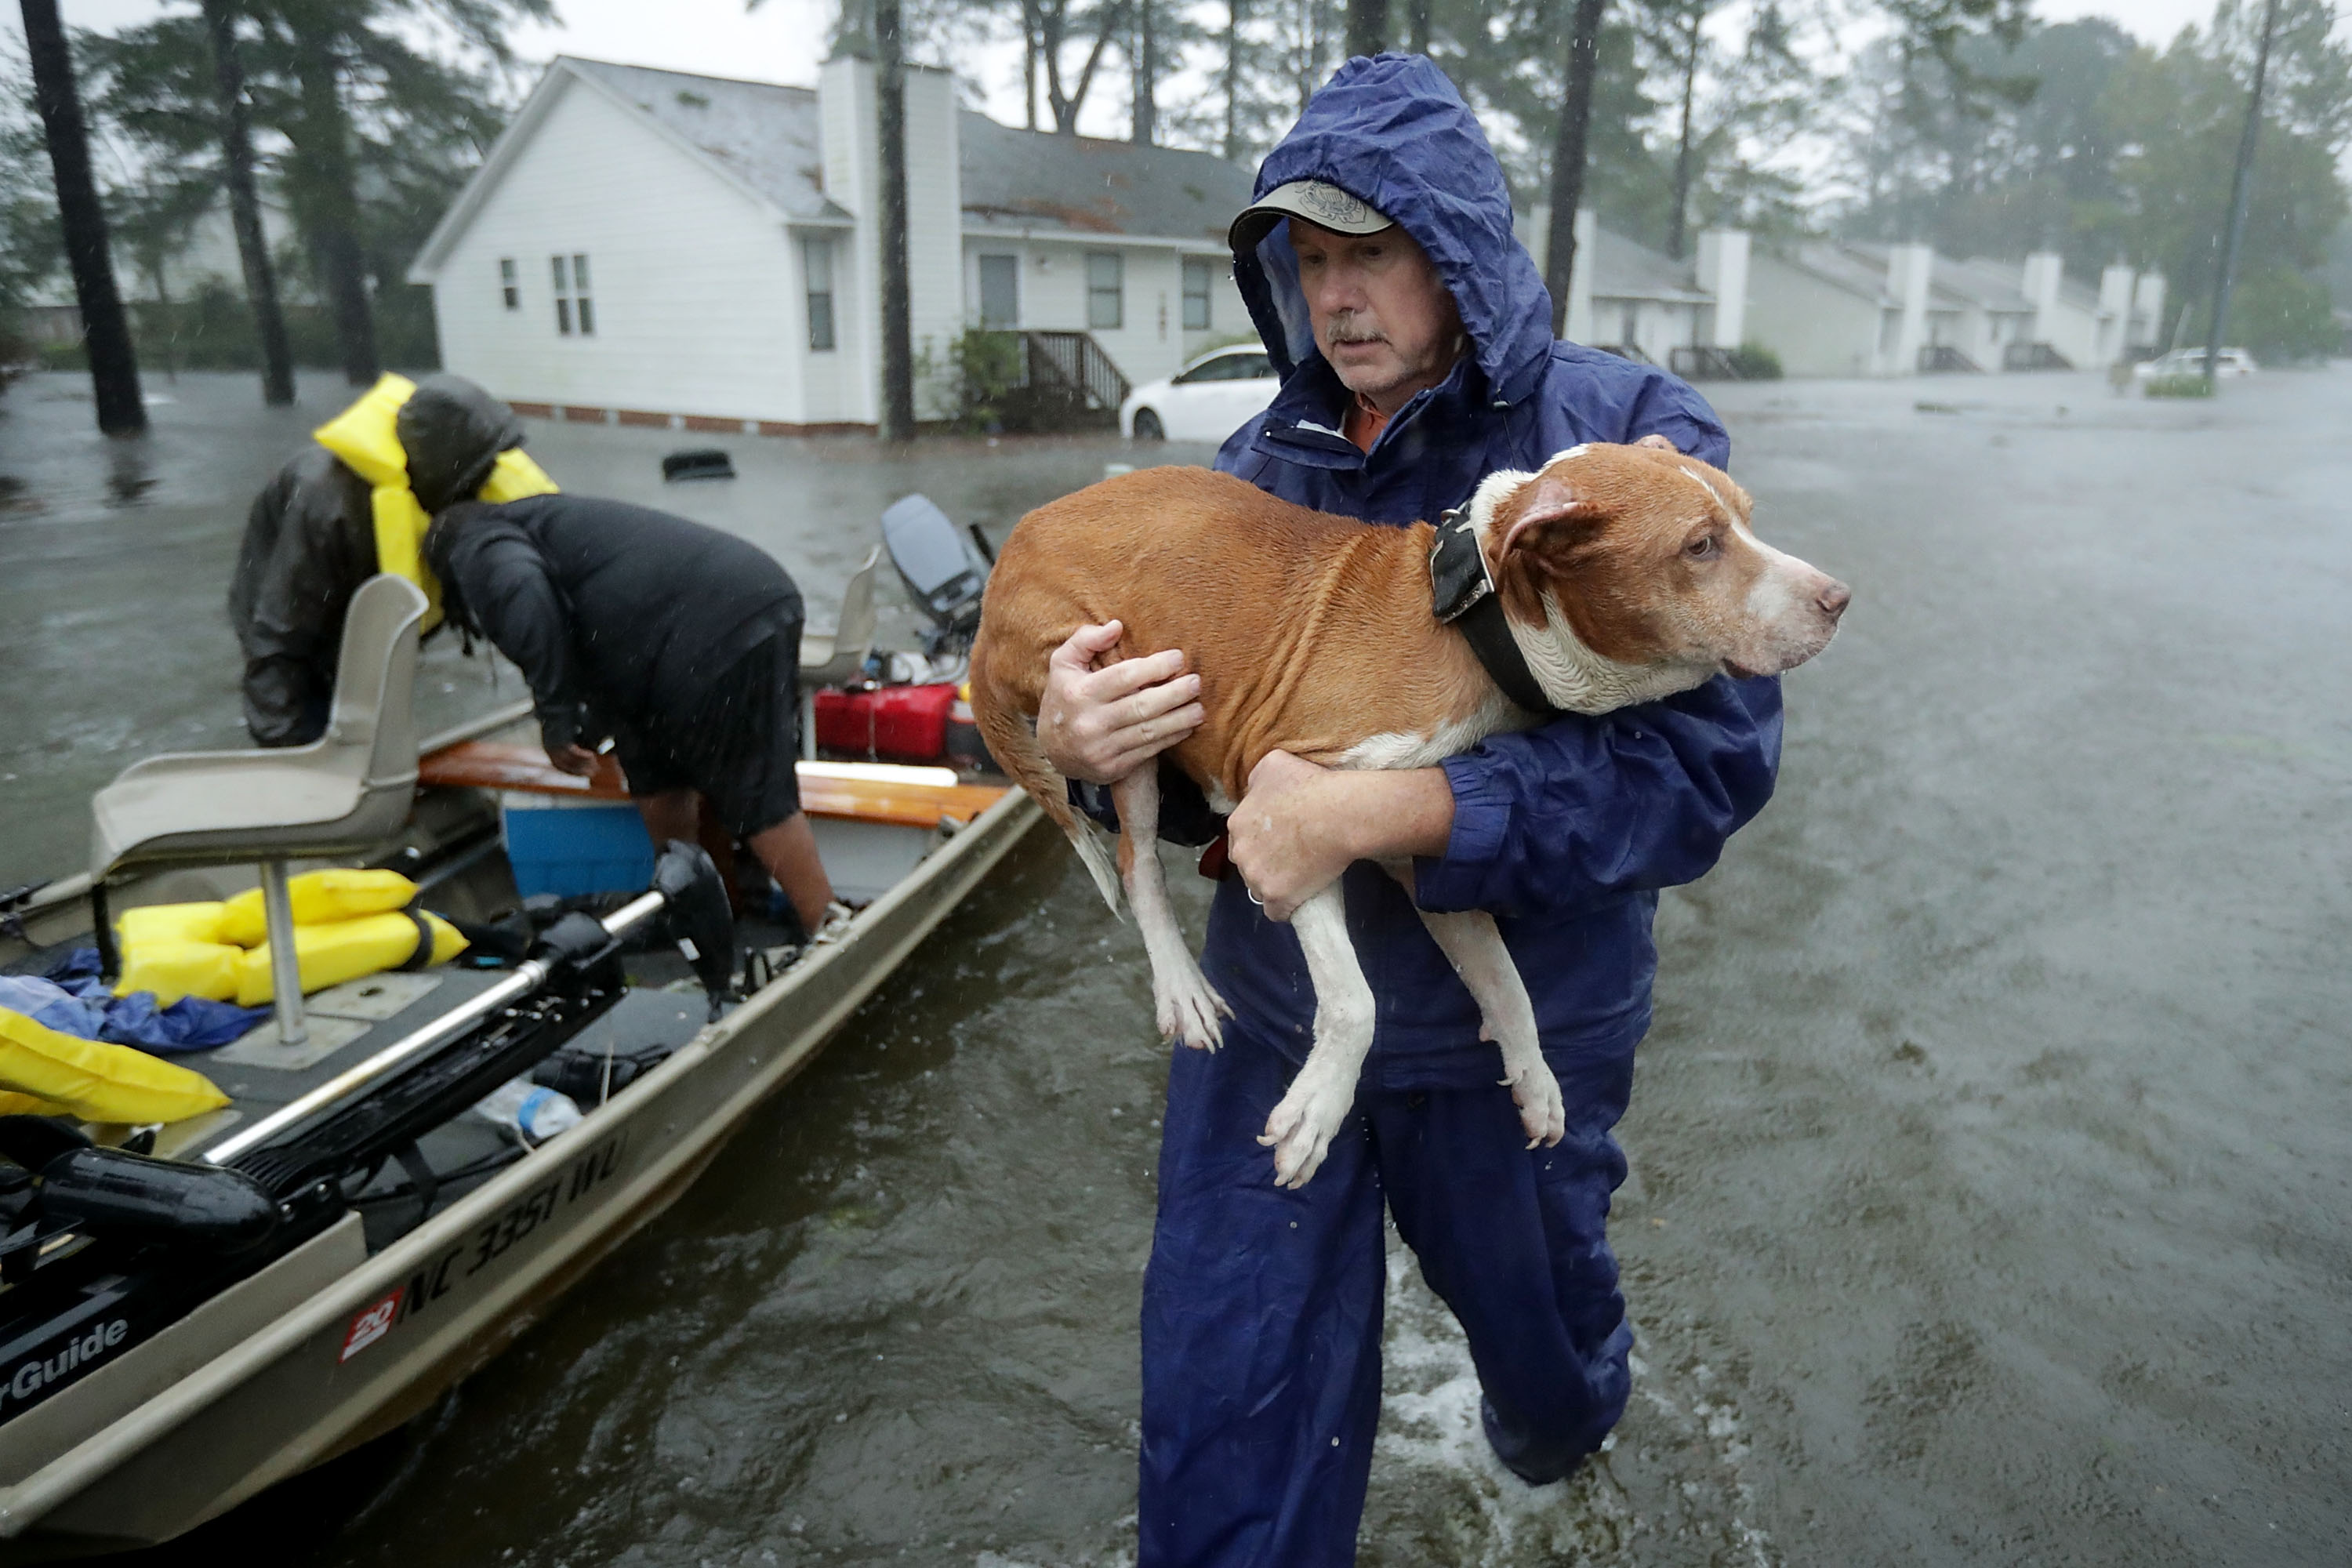 Volunteers help rescue residents and their pets from flooded homes during Hurricane Florence September 14, 2018 in New Bern, North Carolina.